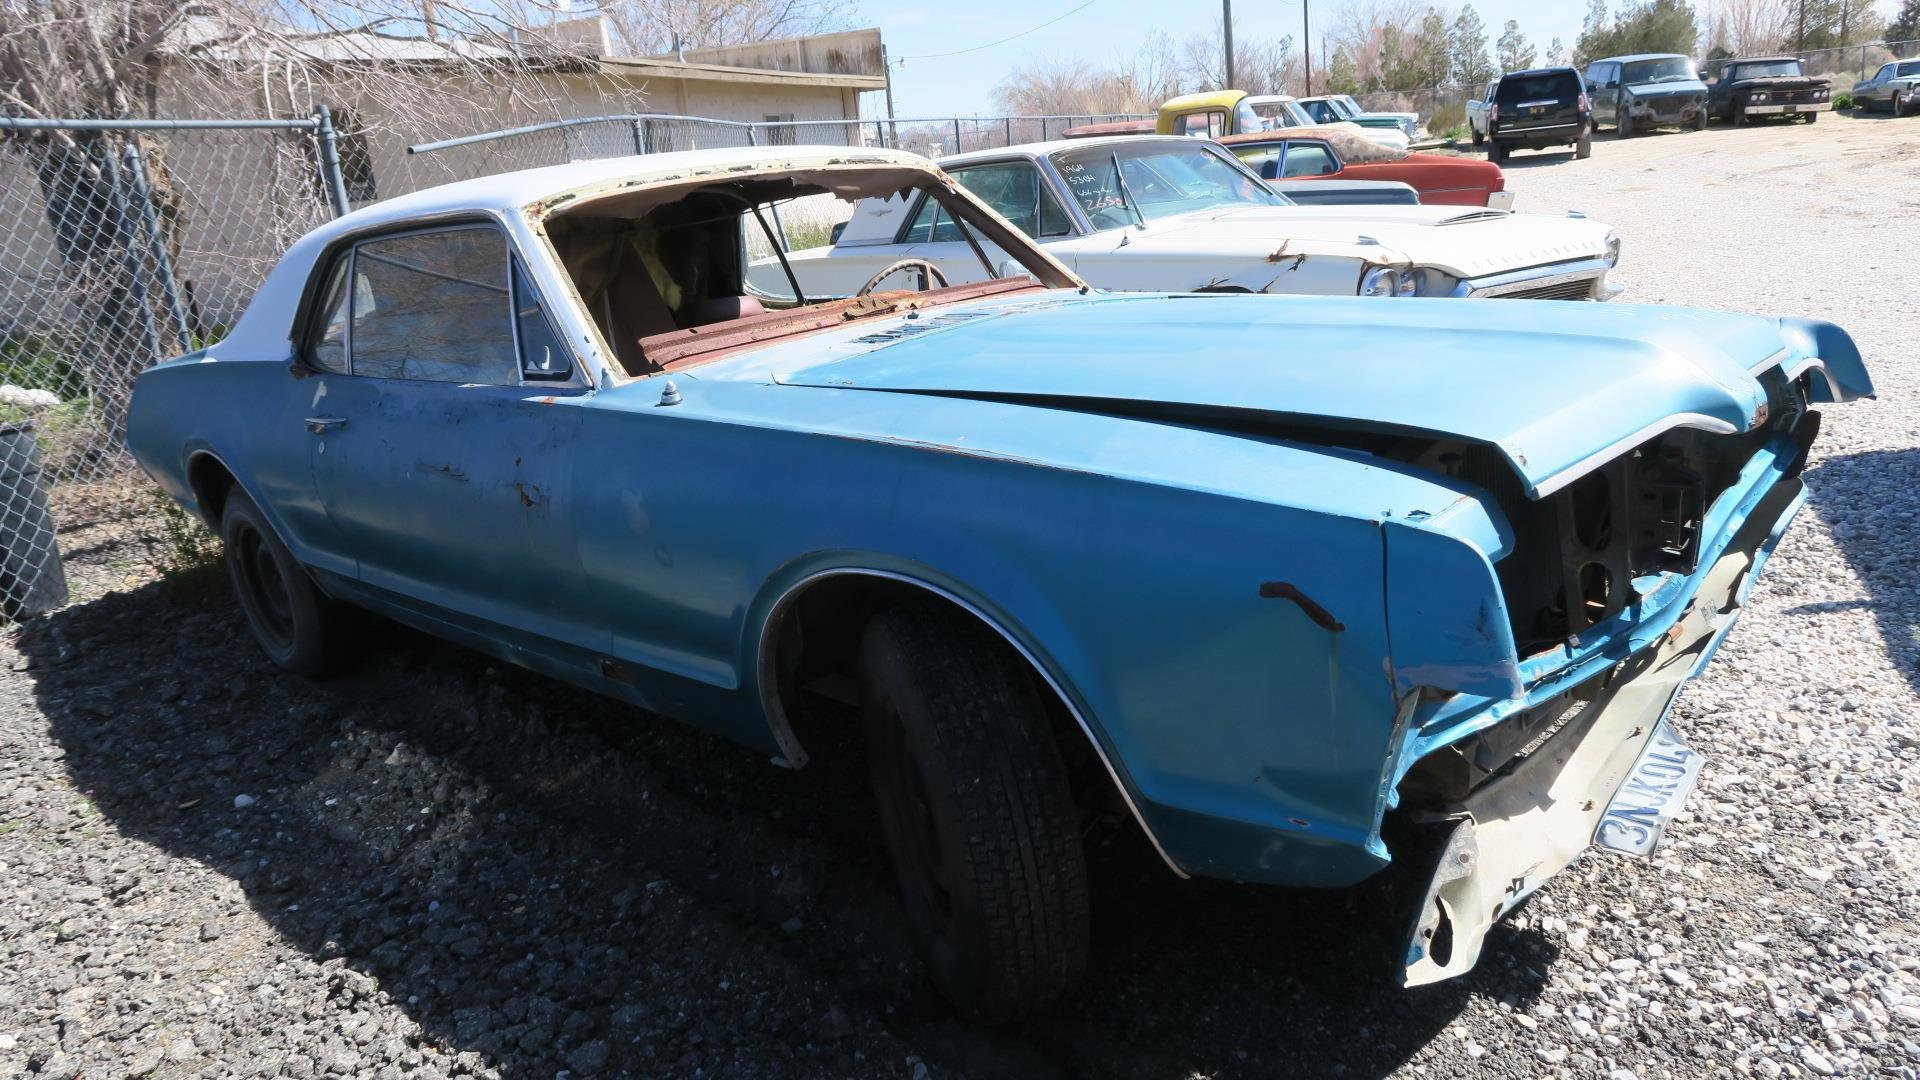 1967 Mercury Cougar 289 C Code Auto Project Blue  $1.9k For Sale (picture 2 of 6)